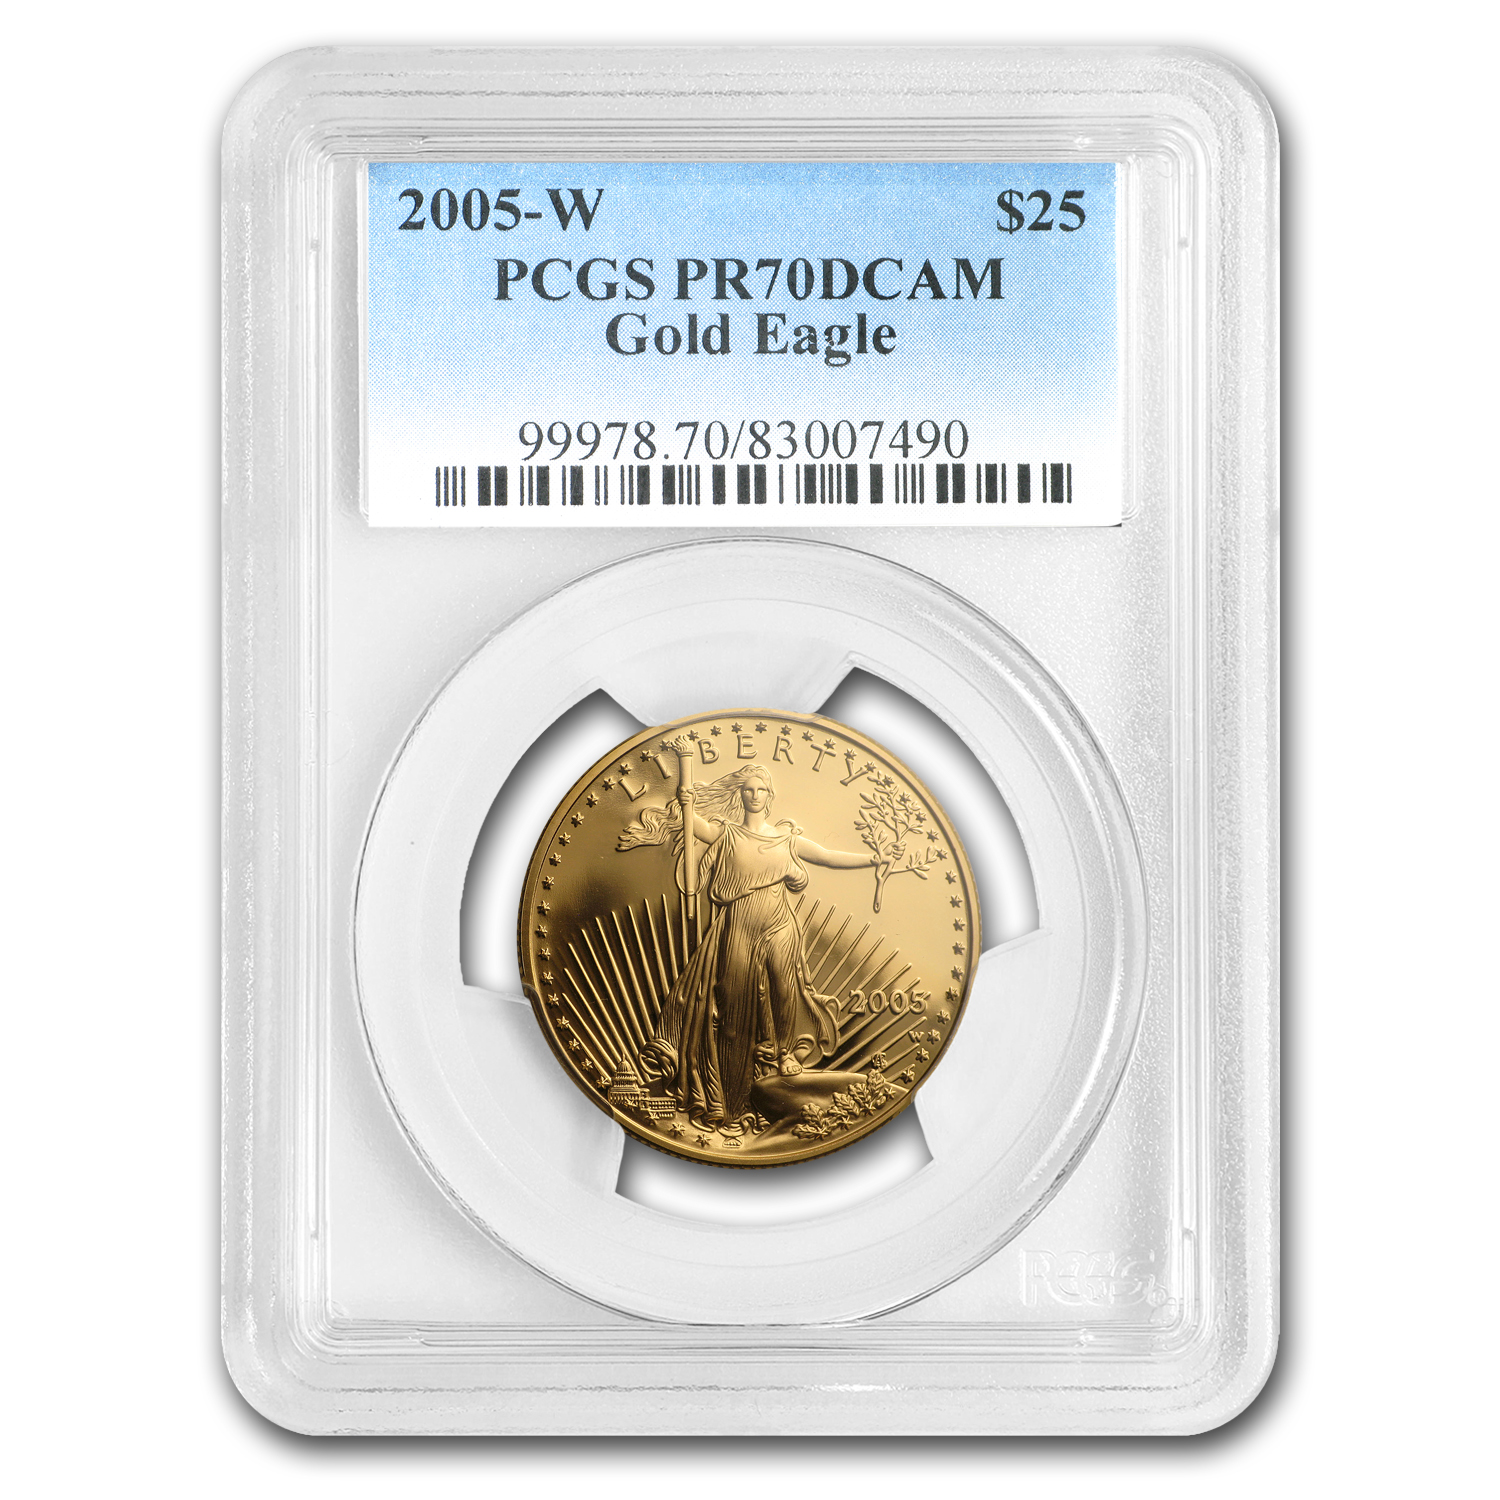 2005-W 1/2 oz Proof Gold American Eagle PR-70 PCGS